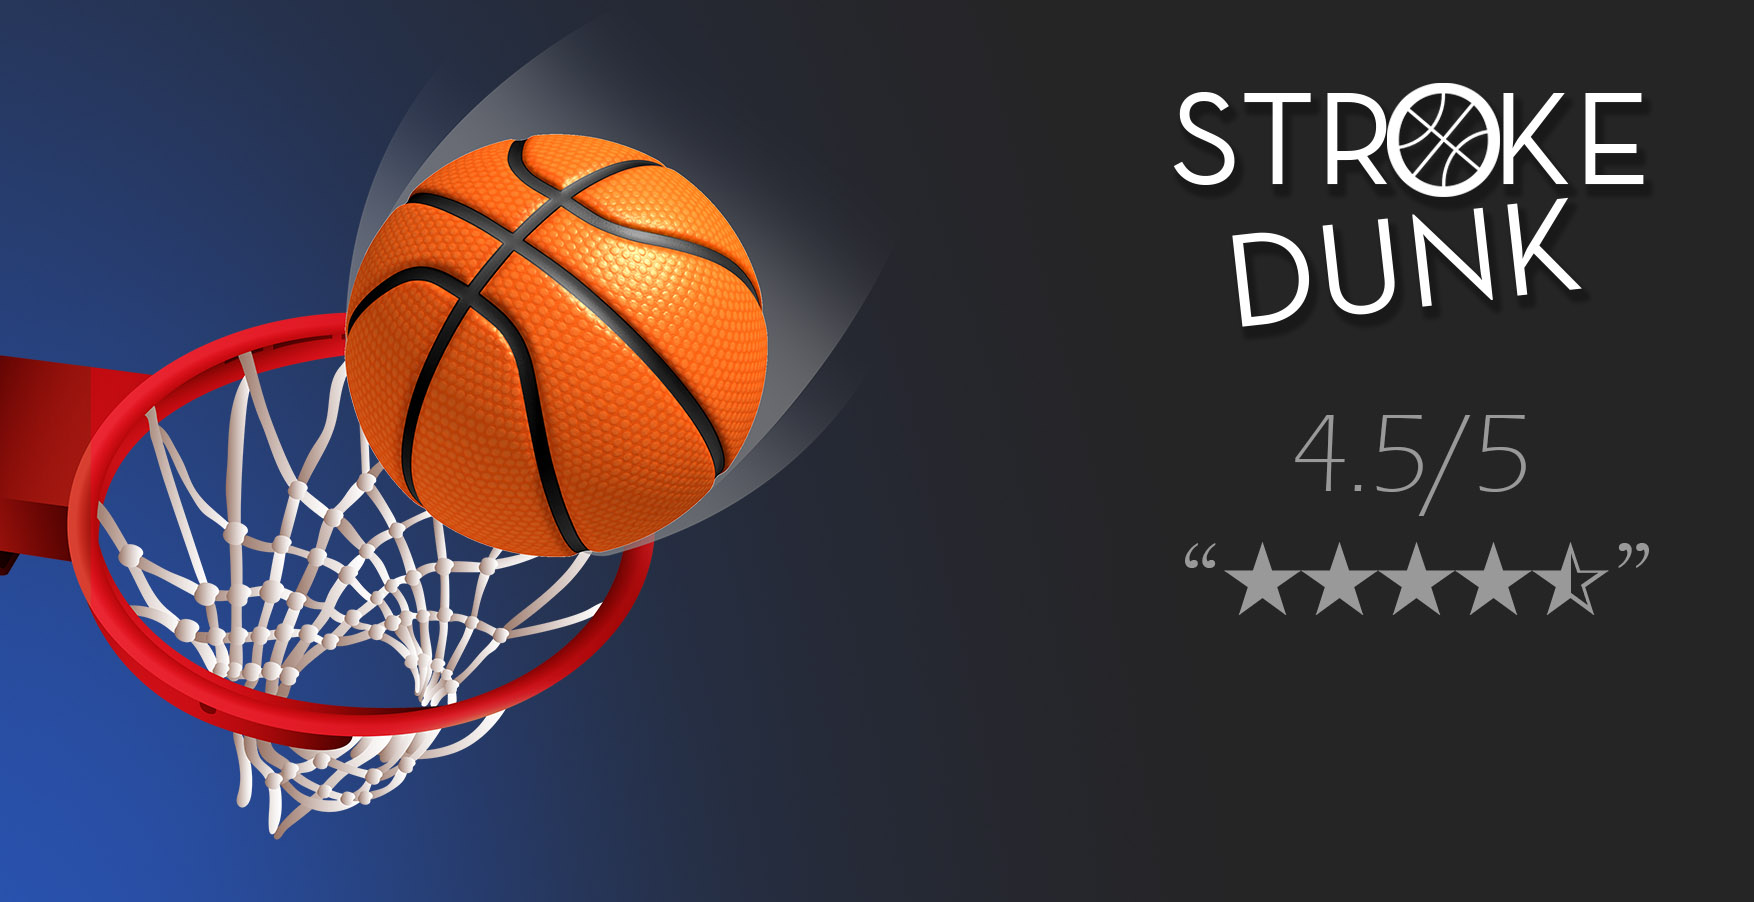 Dunk Stroke – The most addictive basketball game ever!